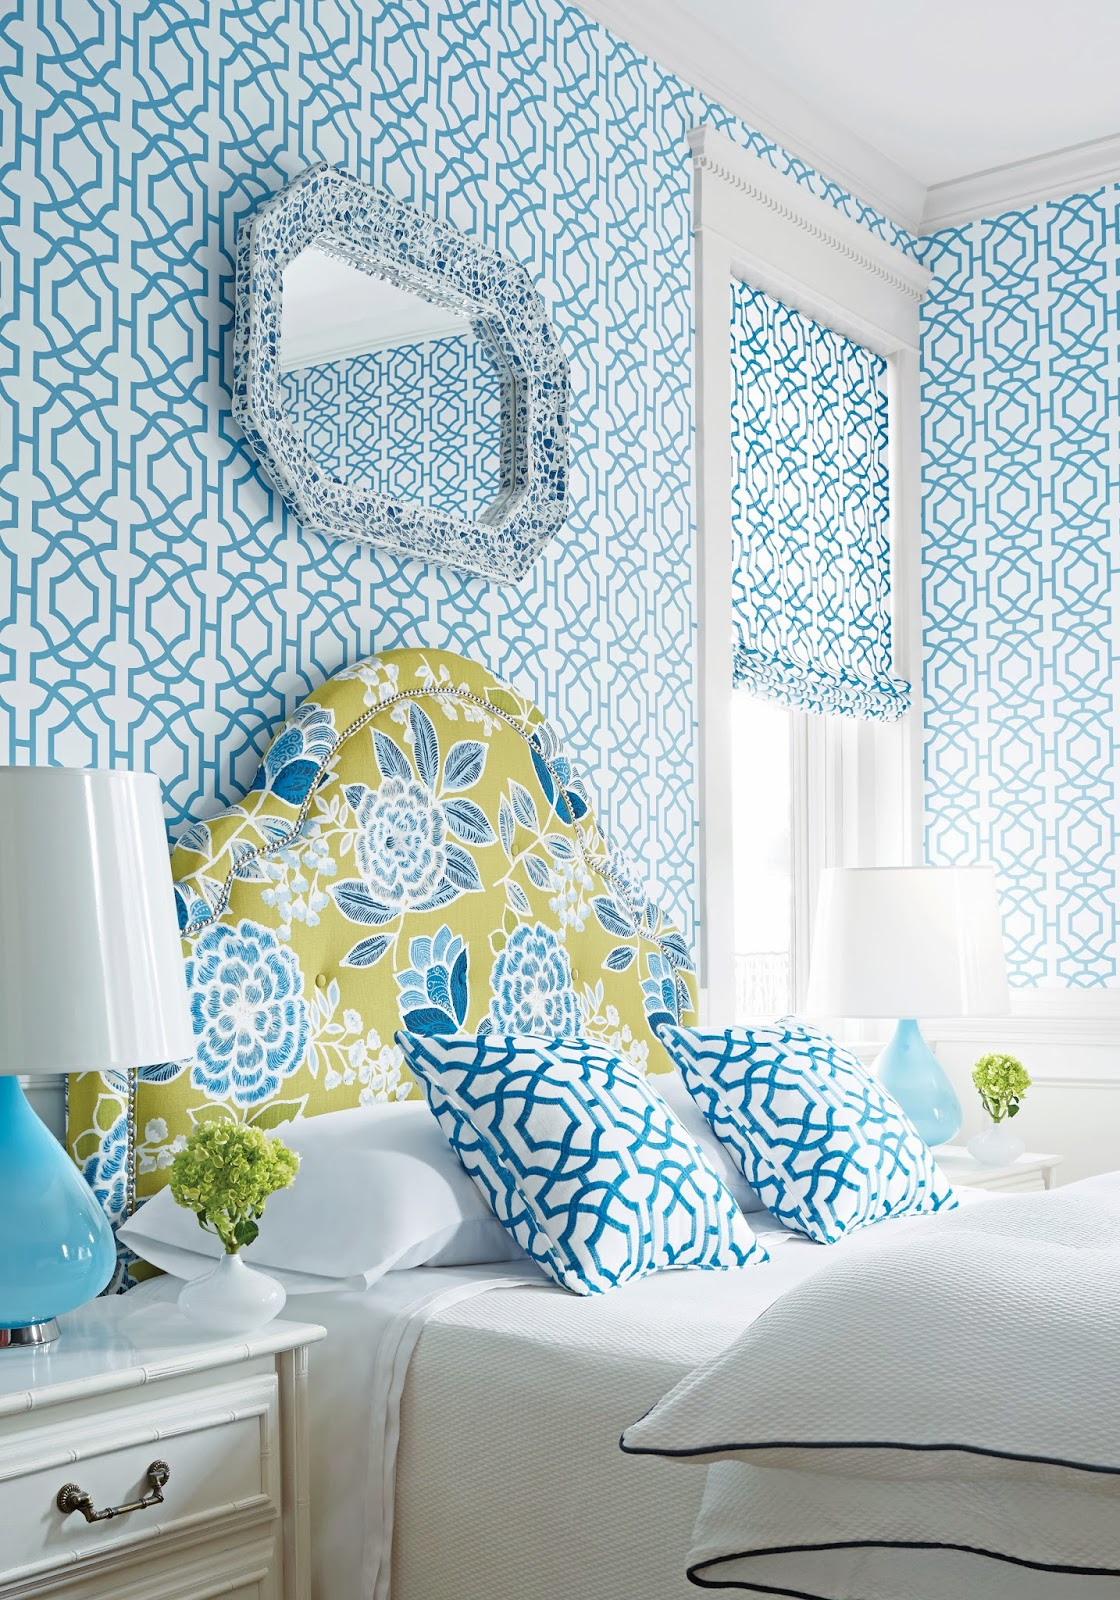 Home styling ana antunes new wallpaper collection by for Wallpaper esta home